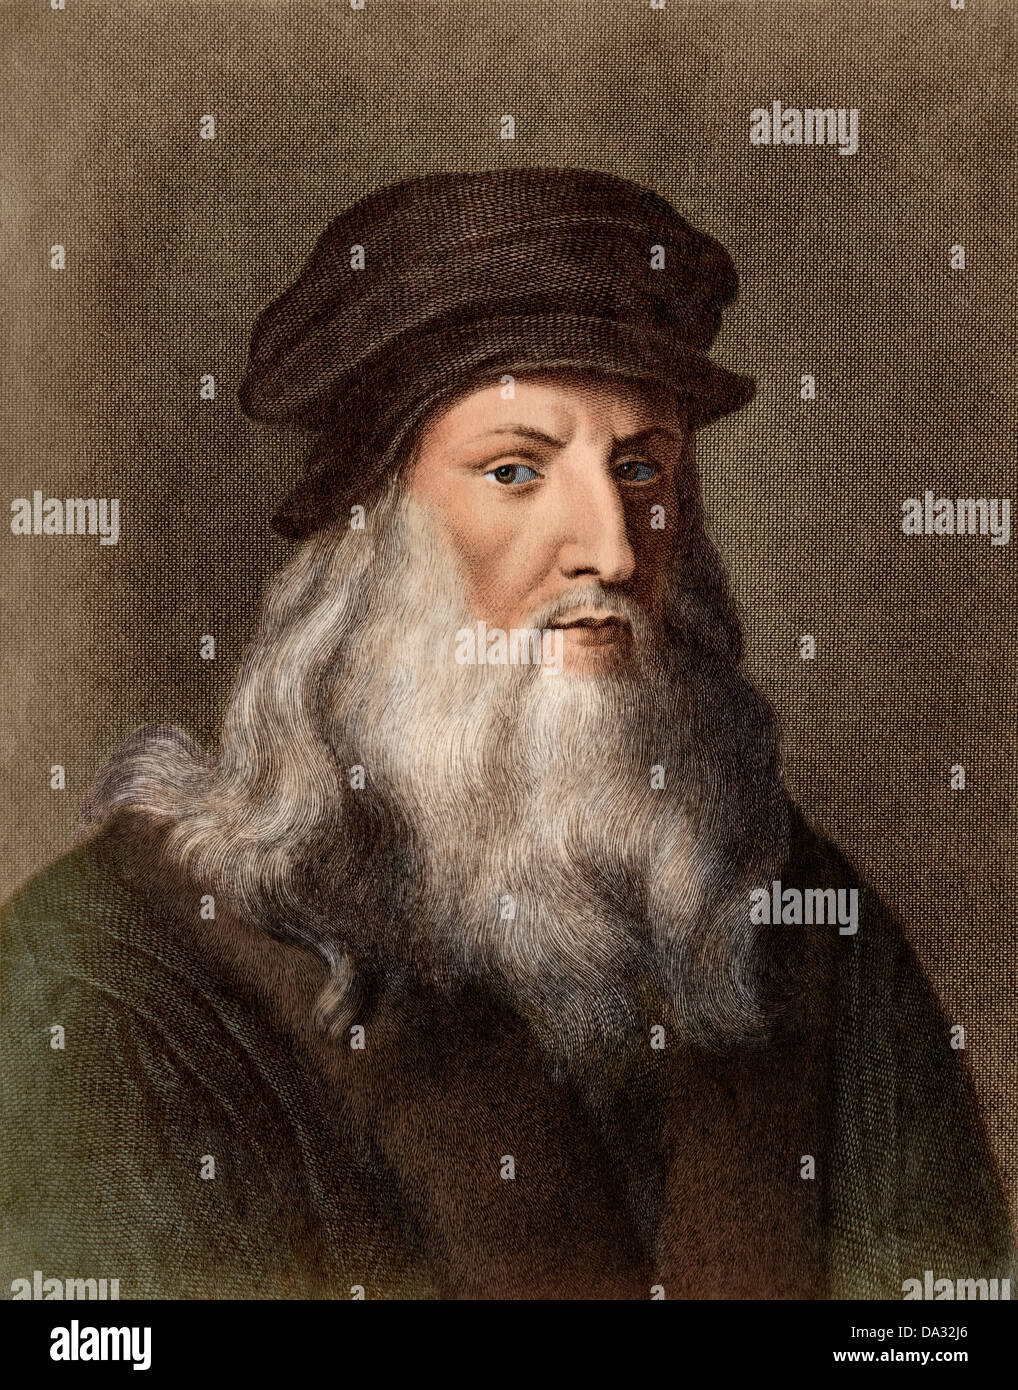 Portrait of artist Leonardo da Vinci. Digitally colored photograph of a print - Stock Image